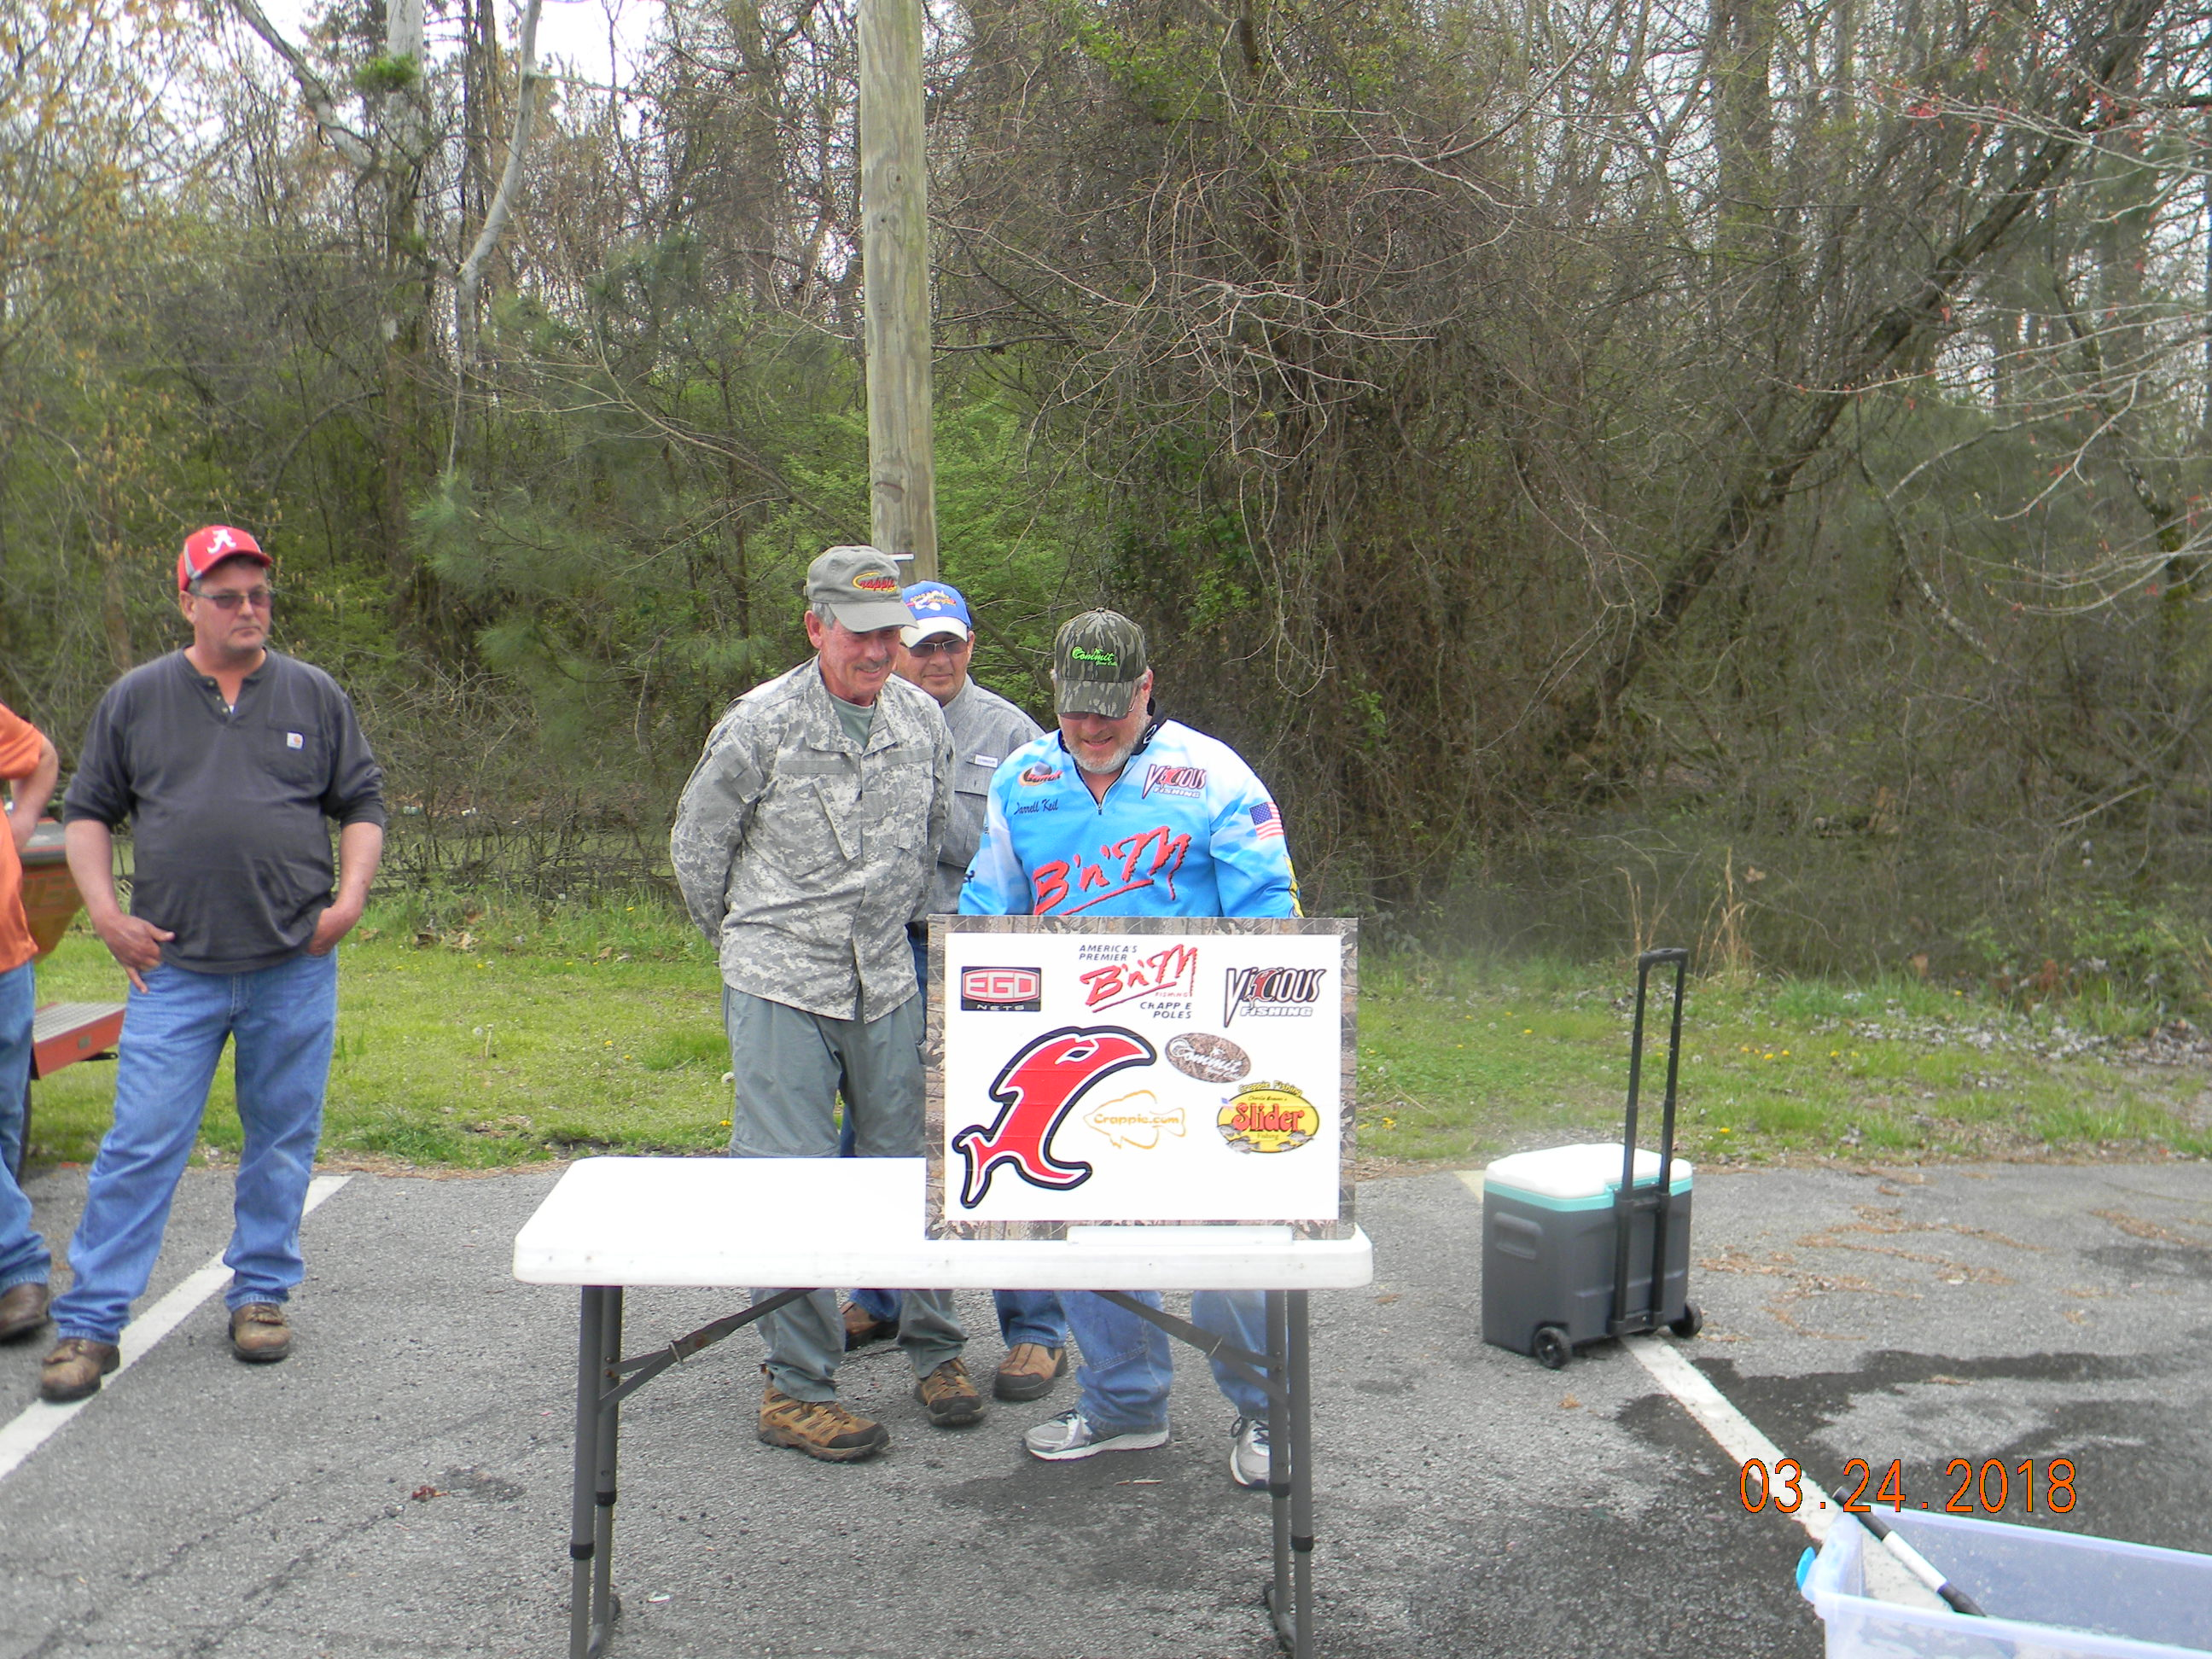 SHOALS AREA CRAPPIE ASSOCIATION